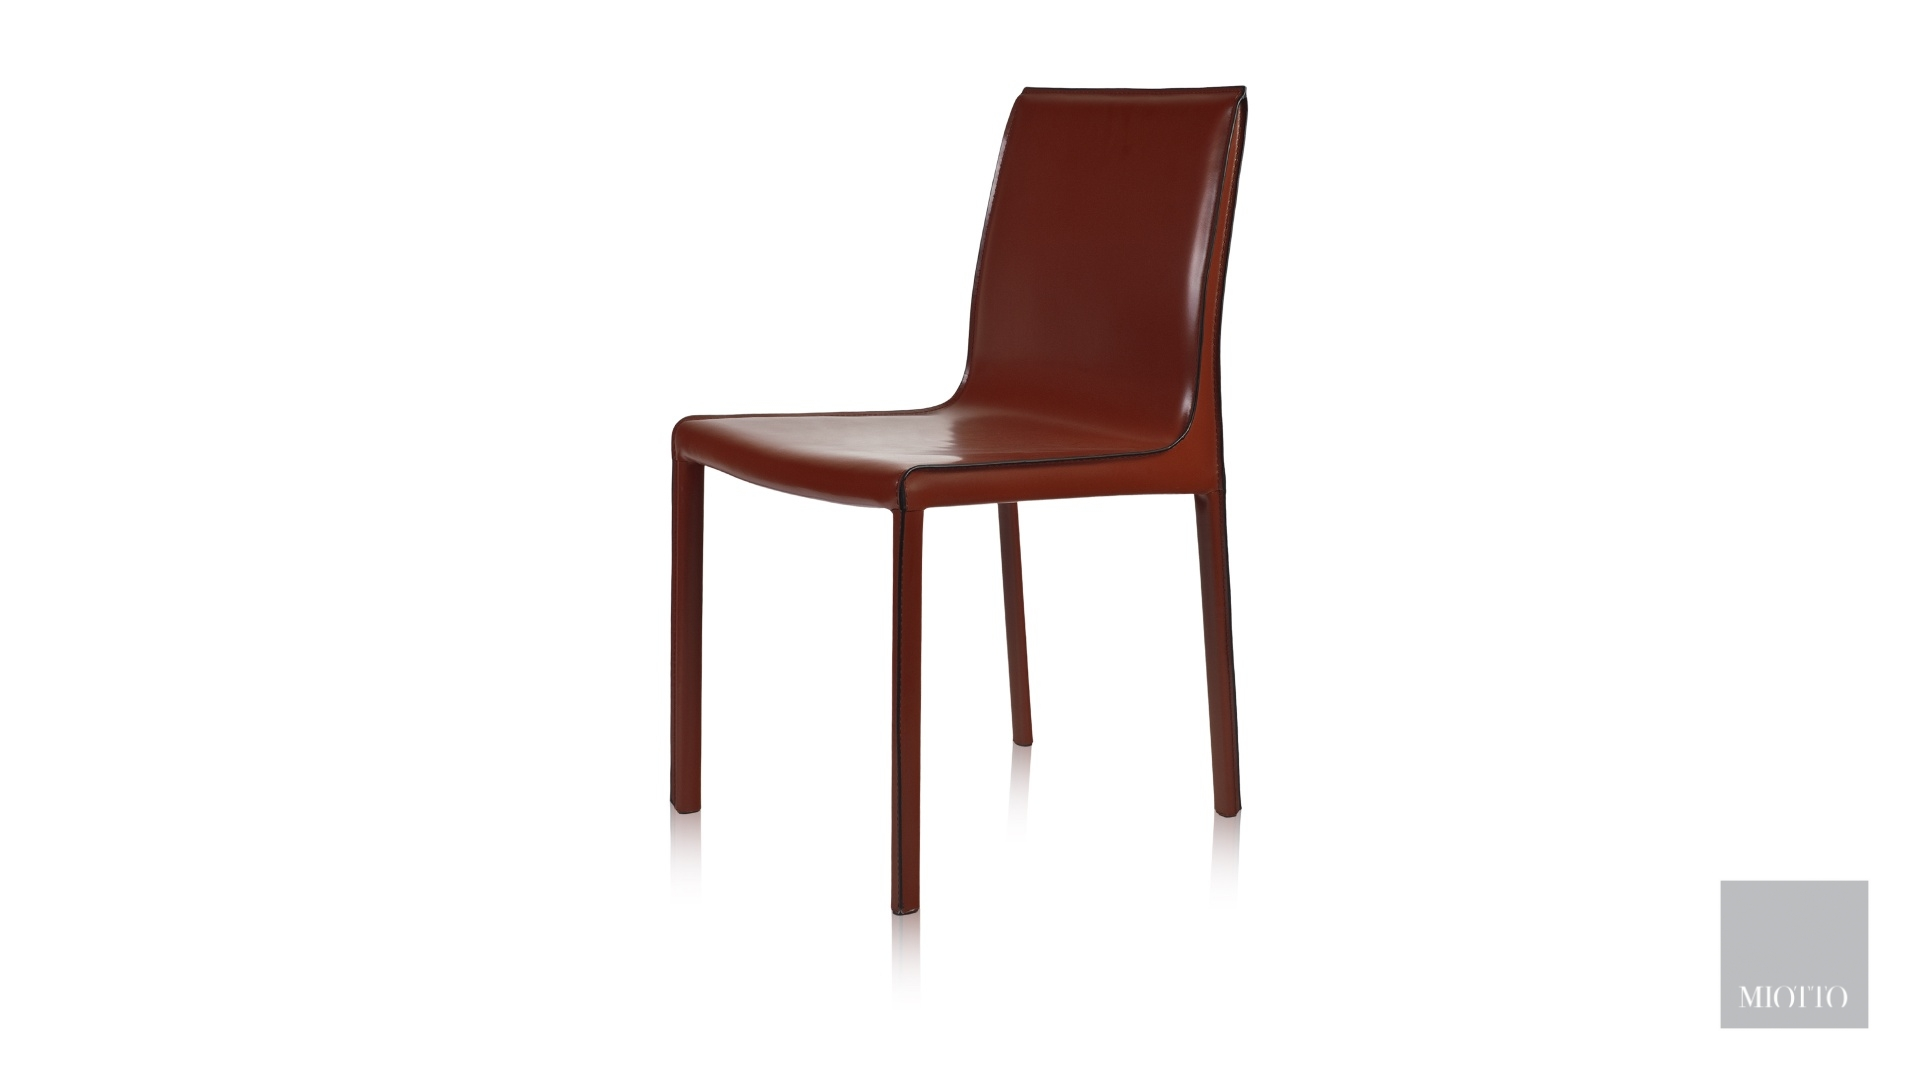 miotto_Ardini dining chair burgundy miotto furniture t